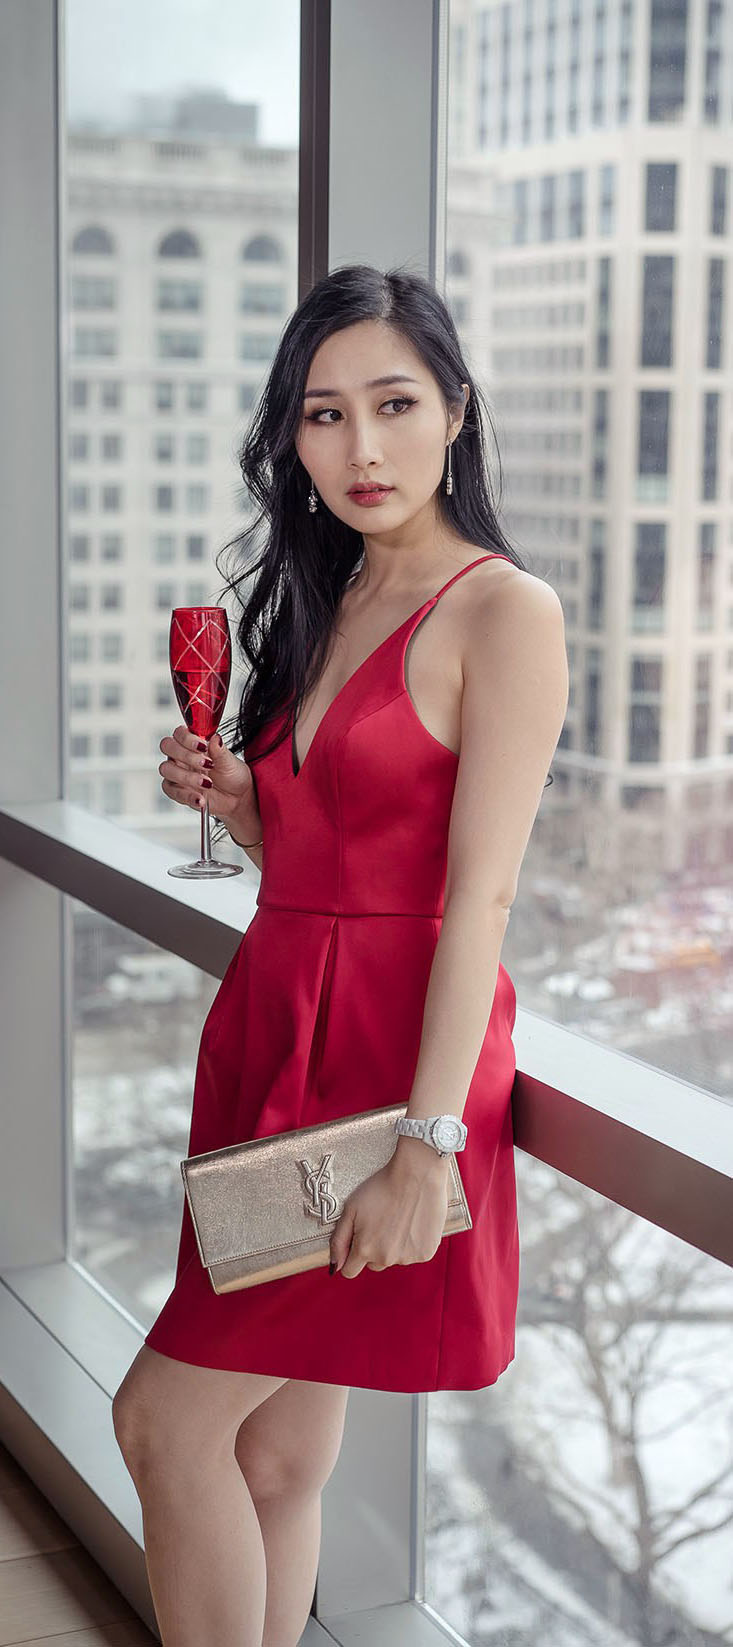 The Red Dress Effect - Why I Wear Red All